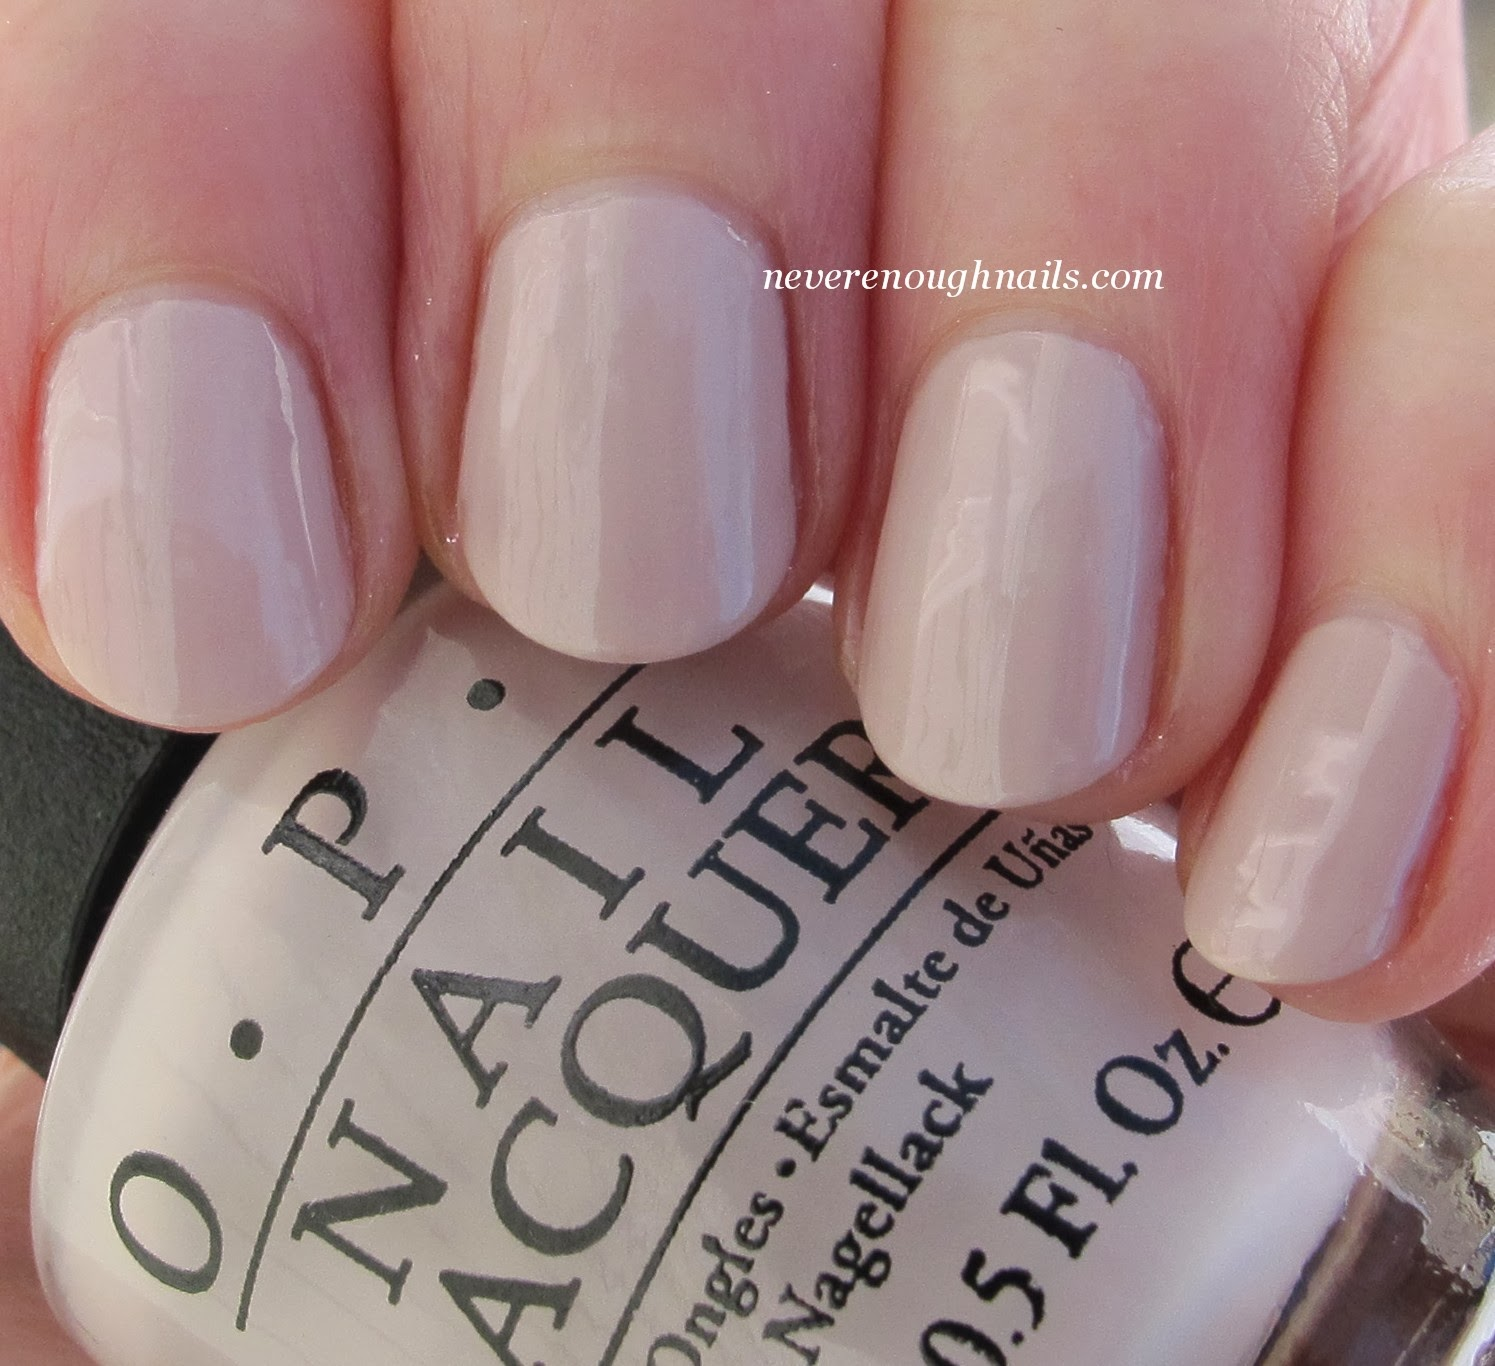 Never Enough Nails: OPI Brazil Collection Swatches, Part 1!